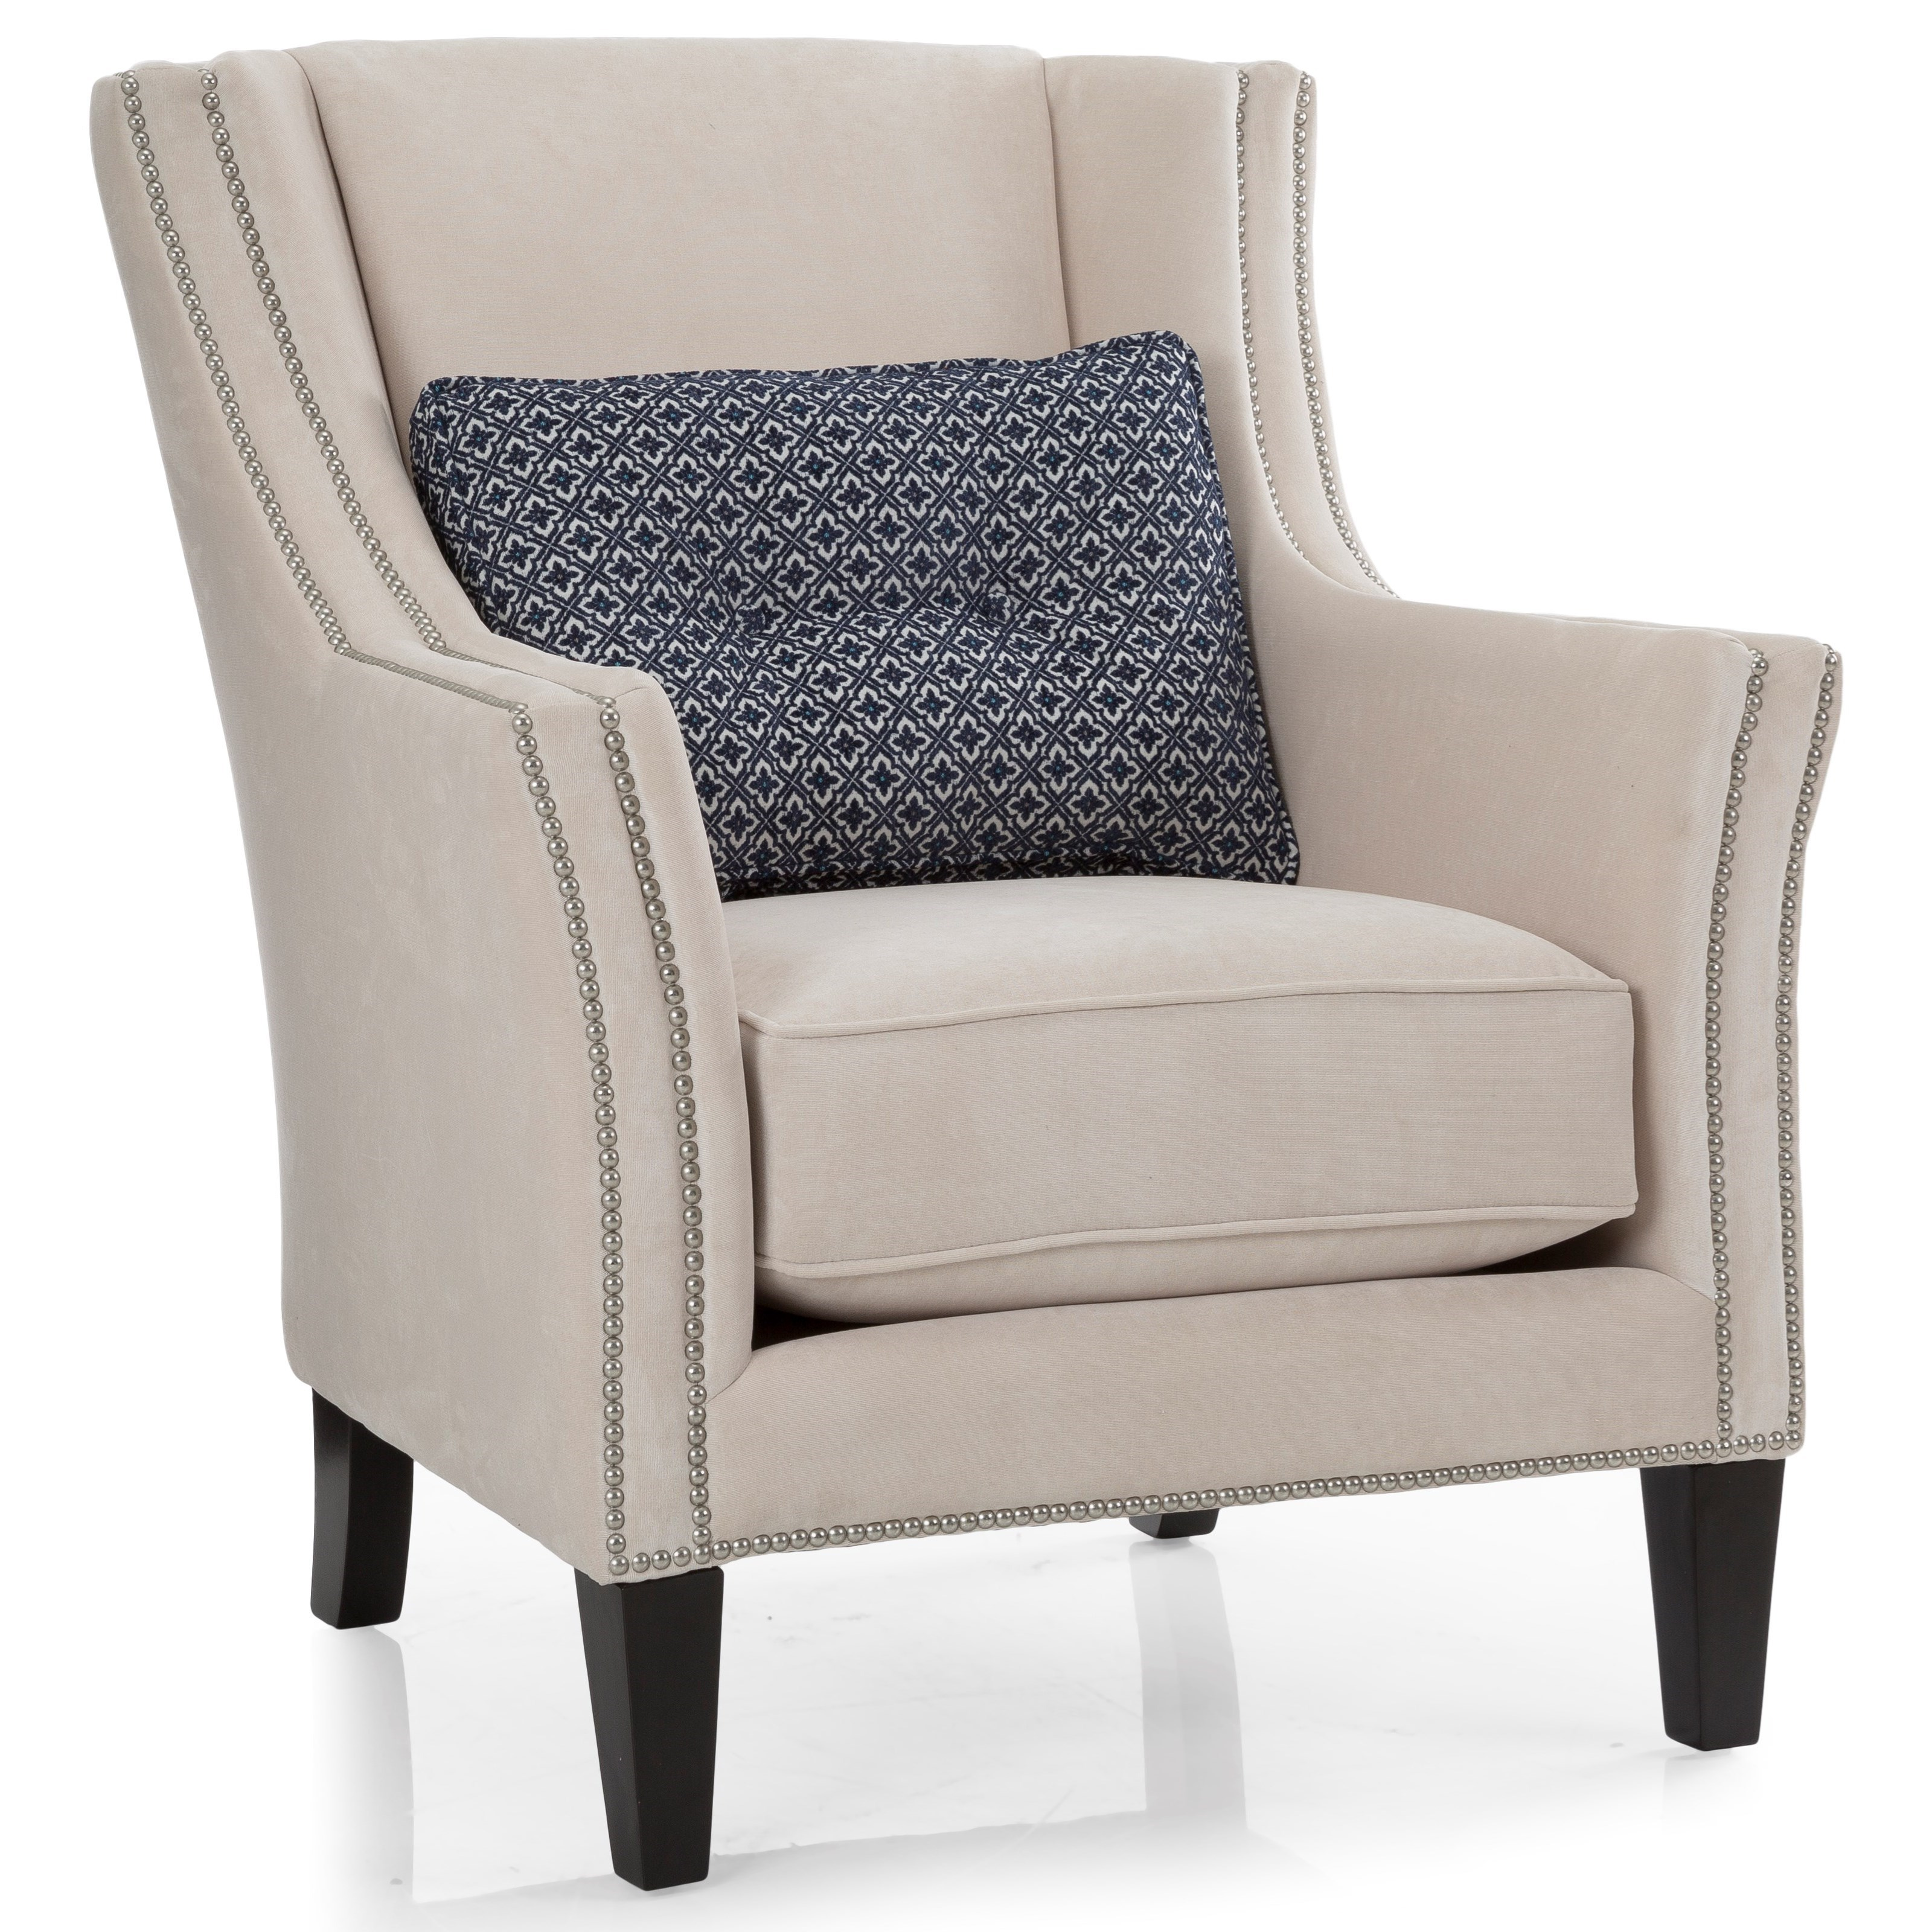 Upholstered Accents Track Arm Chair by Taelor Designs at Bennett's Furniture and Mattresses